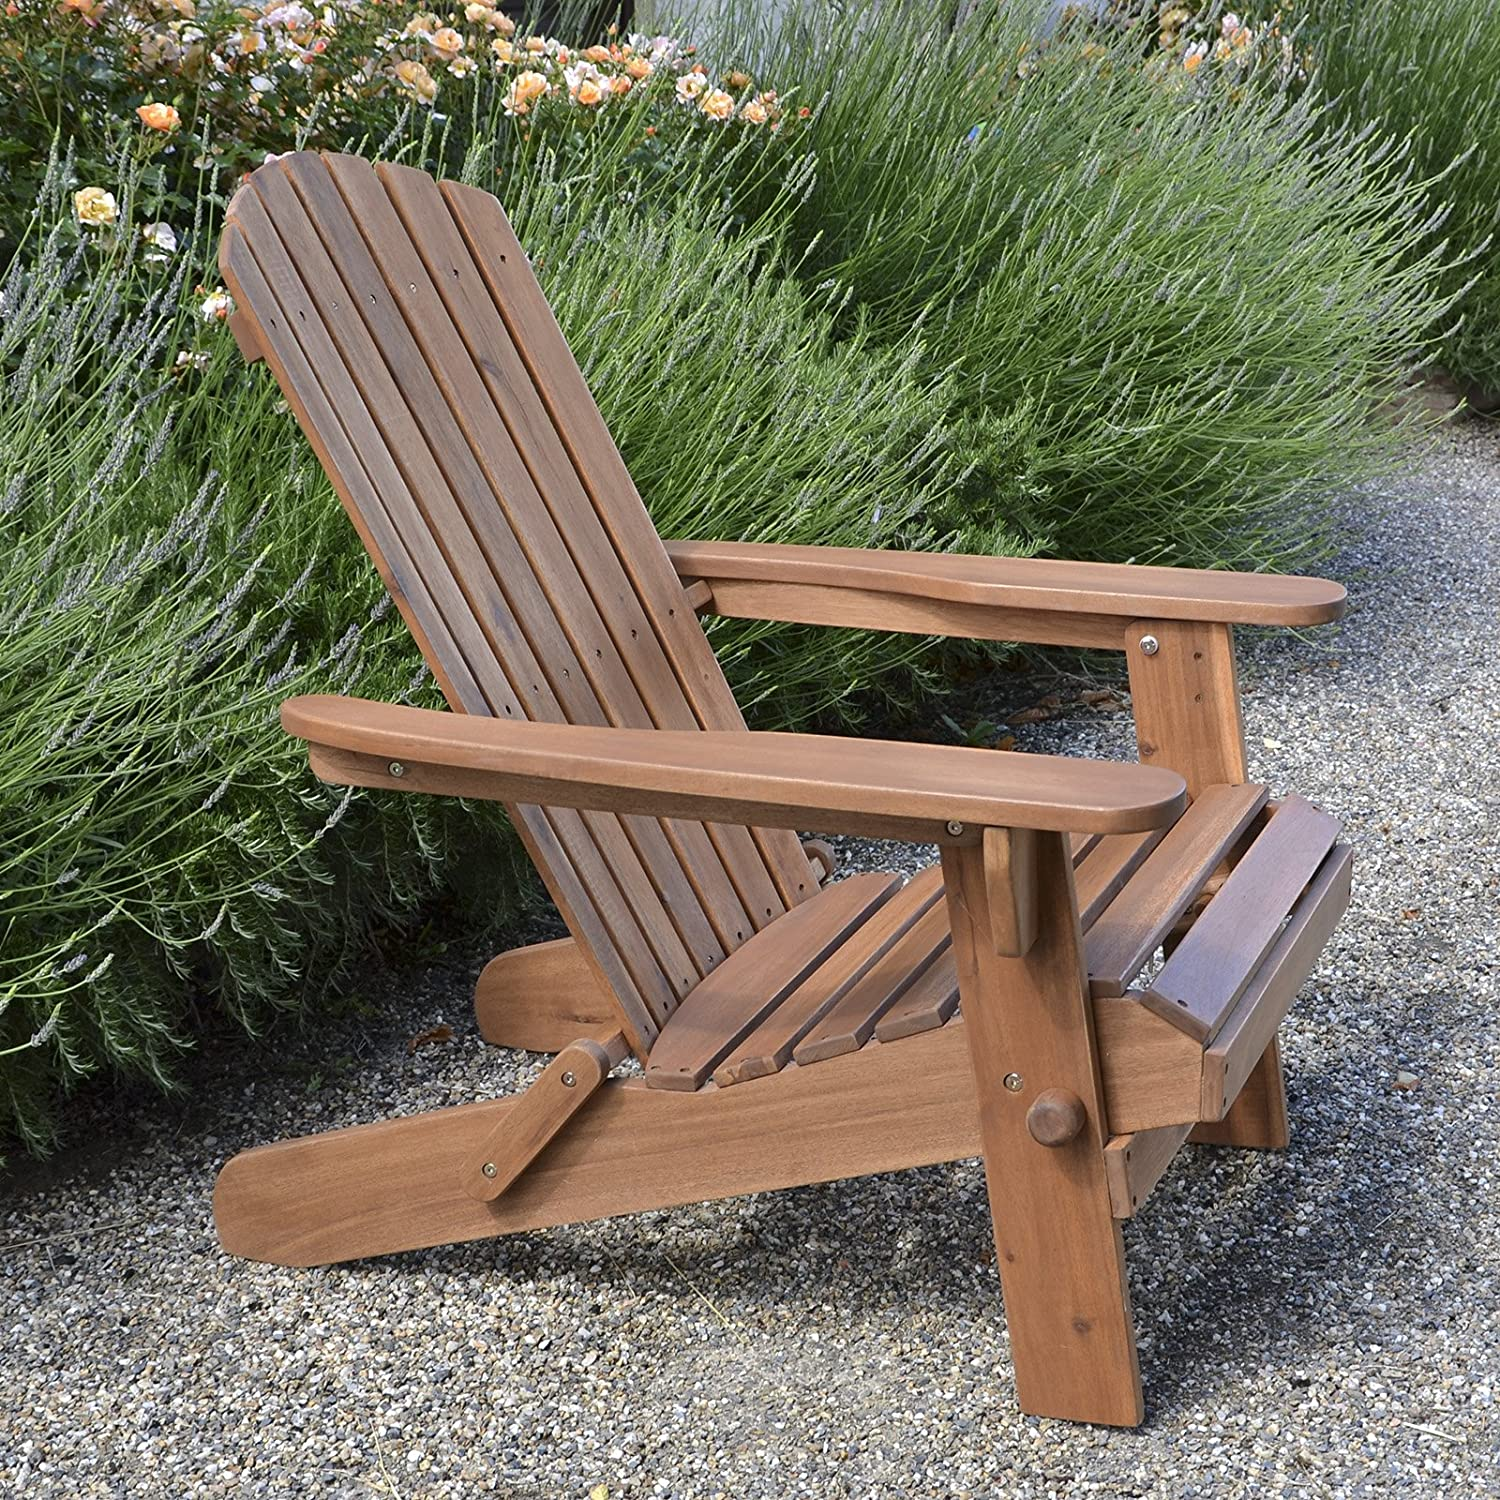 Plant Theatre Adirondack Folding Hardwood Chair : Garden & Outdoor